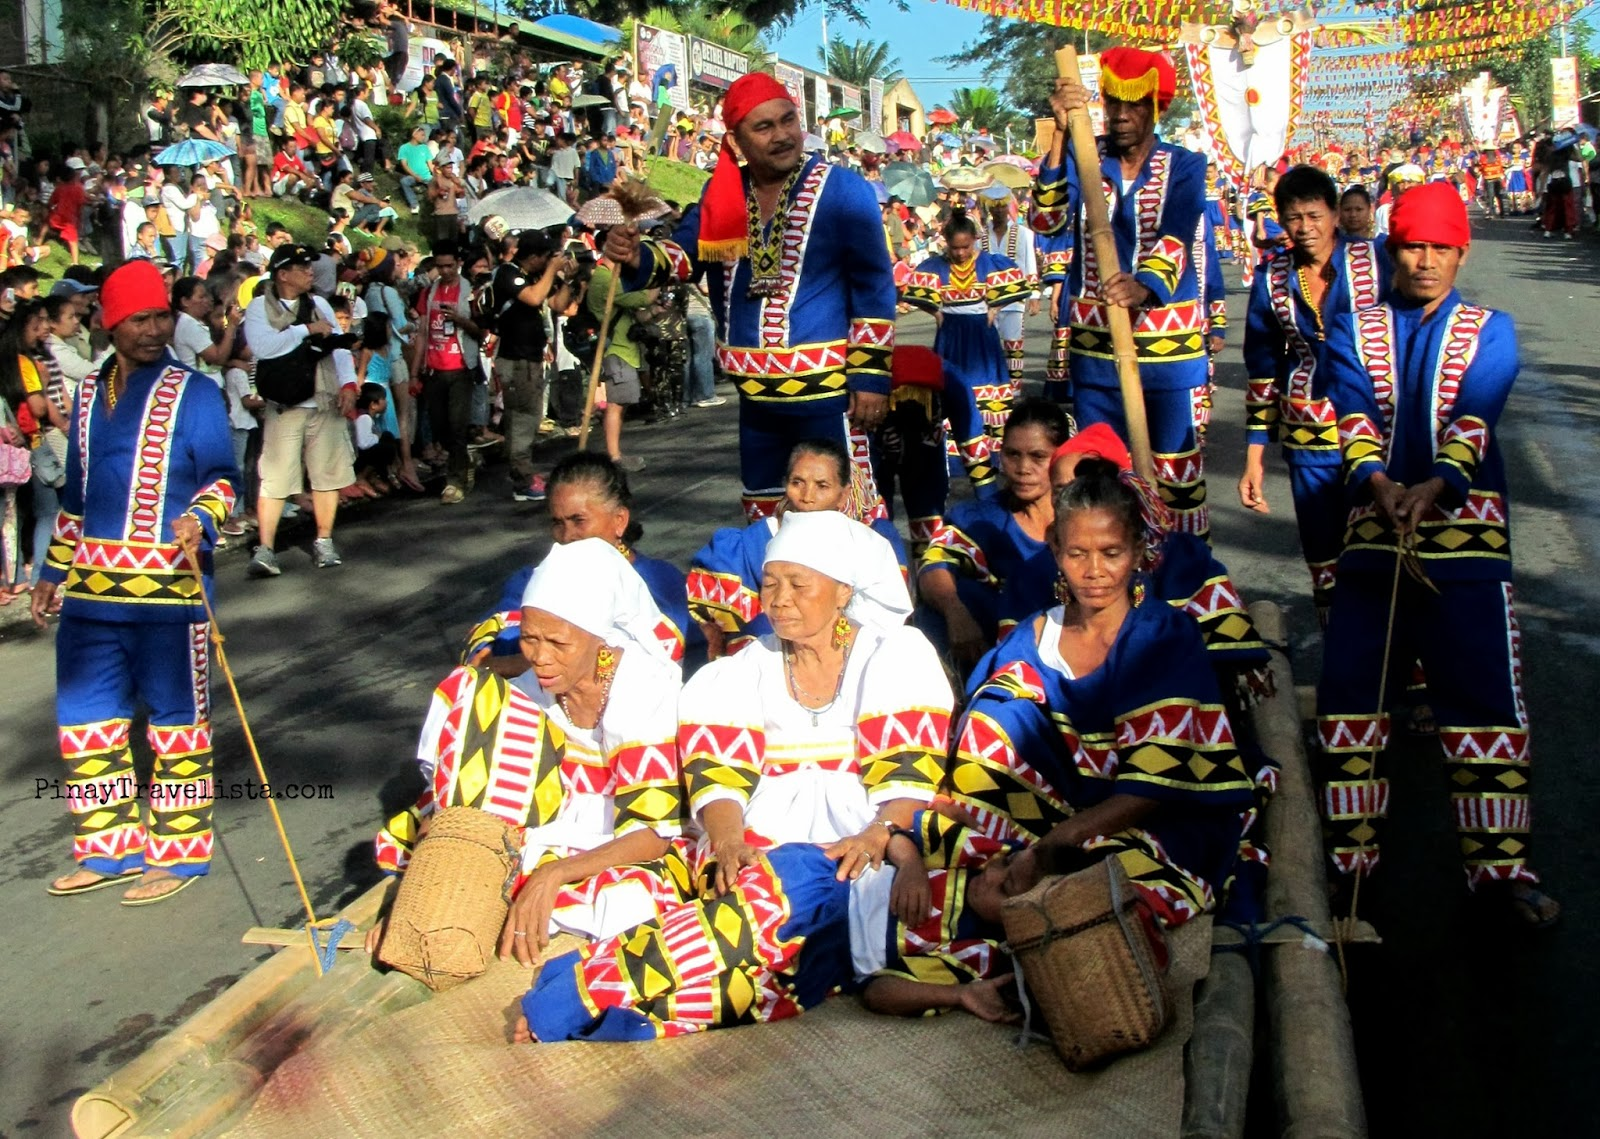 FESTIVALS | Tribal Dance in Colors at Kaamulan Festival 2013 - PINAY